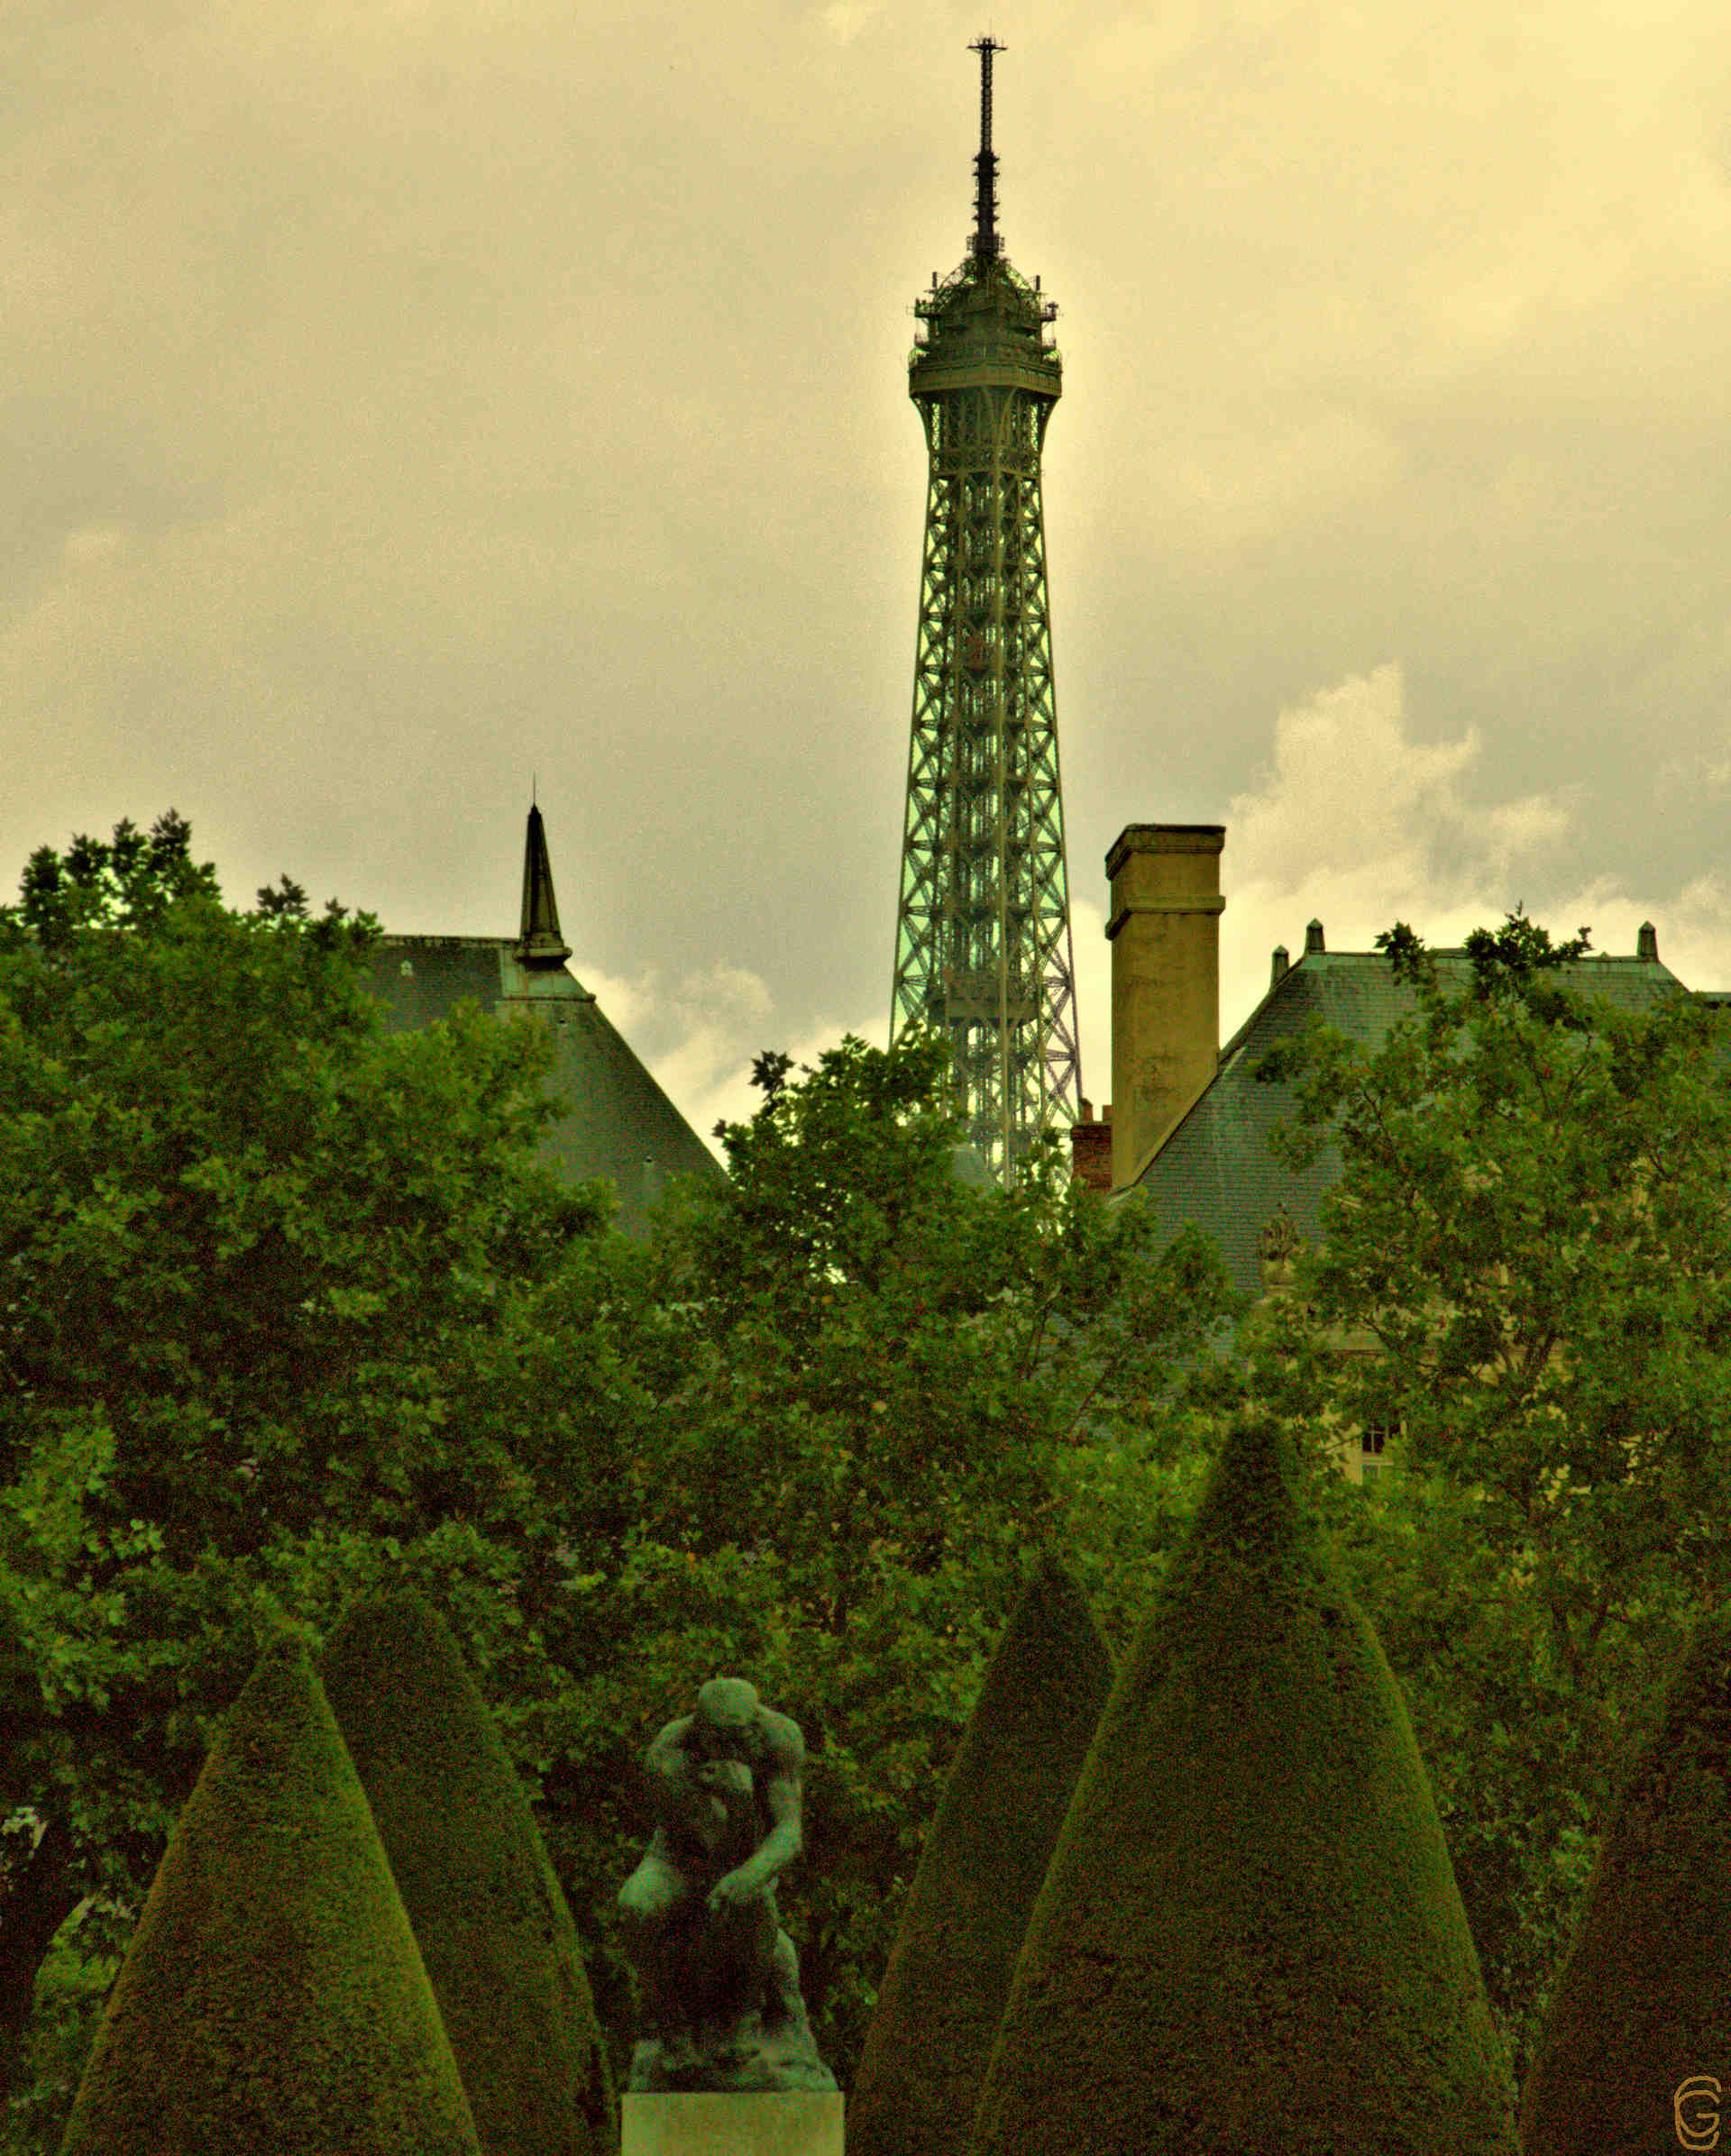 From Eiffel Tower – Week of Oct. 23rd to 27th